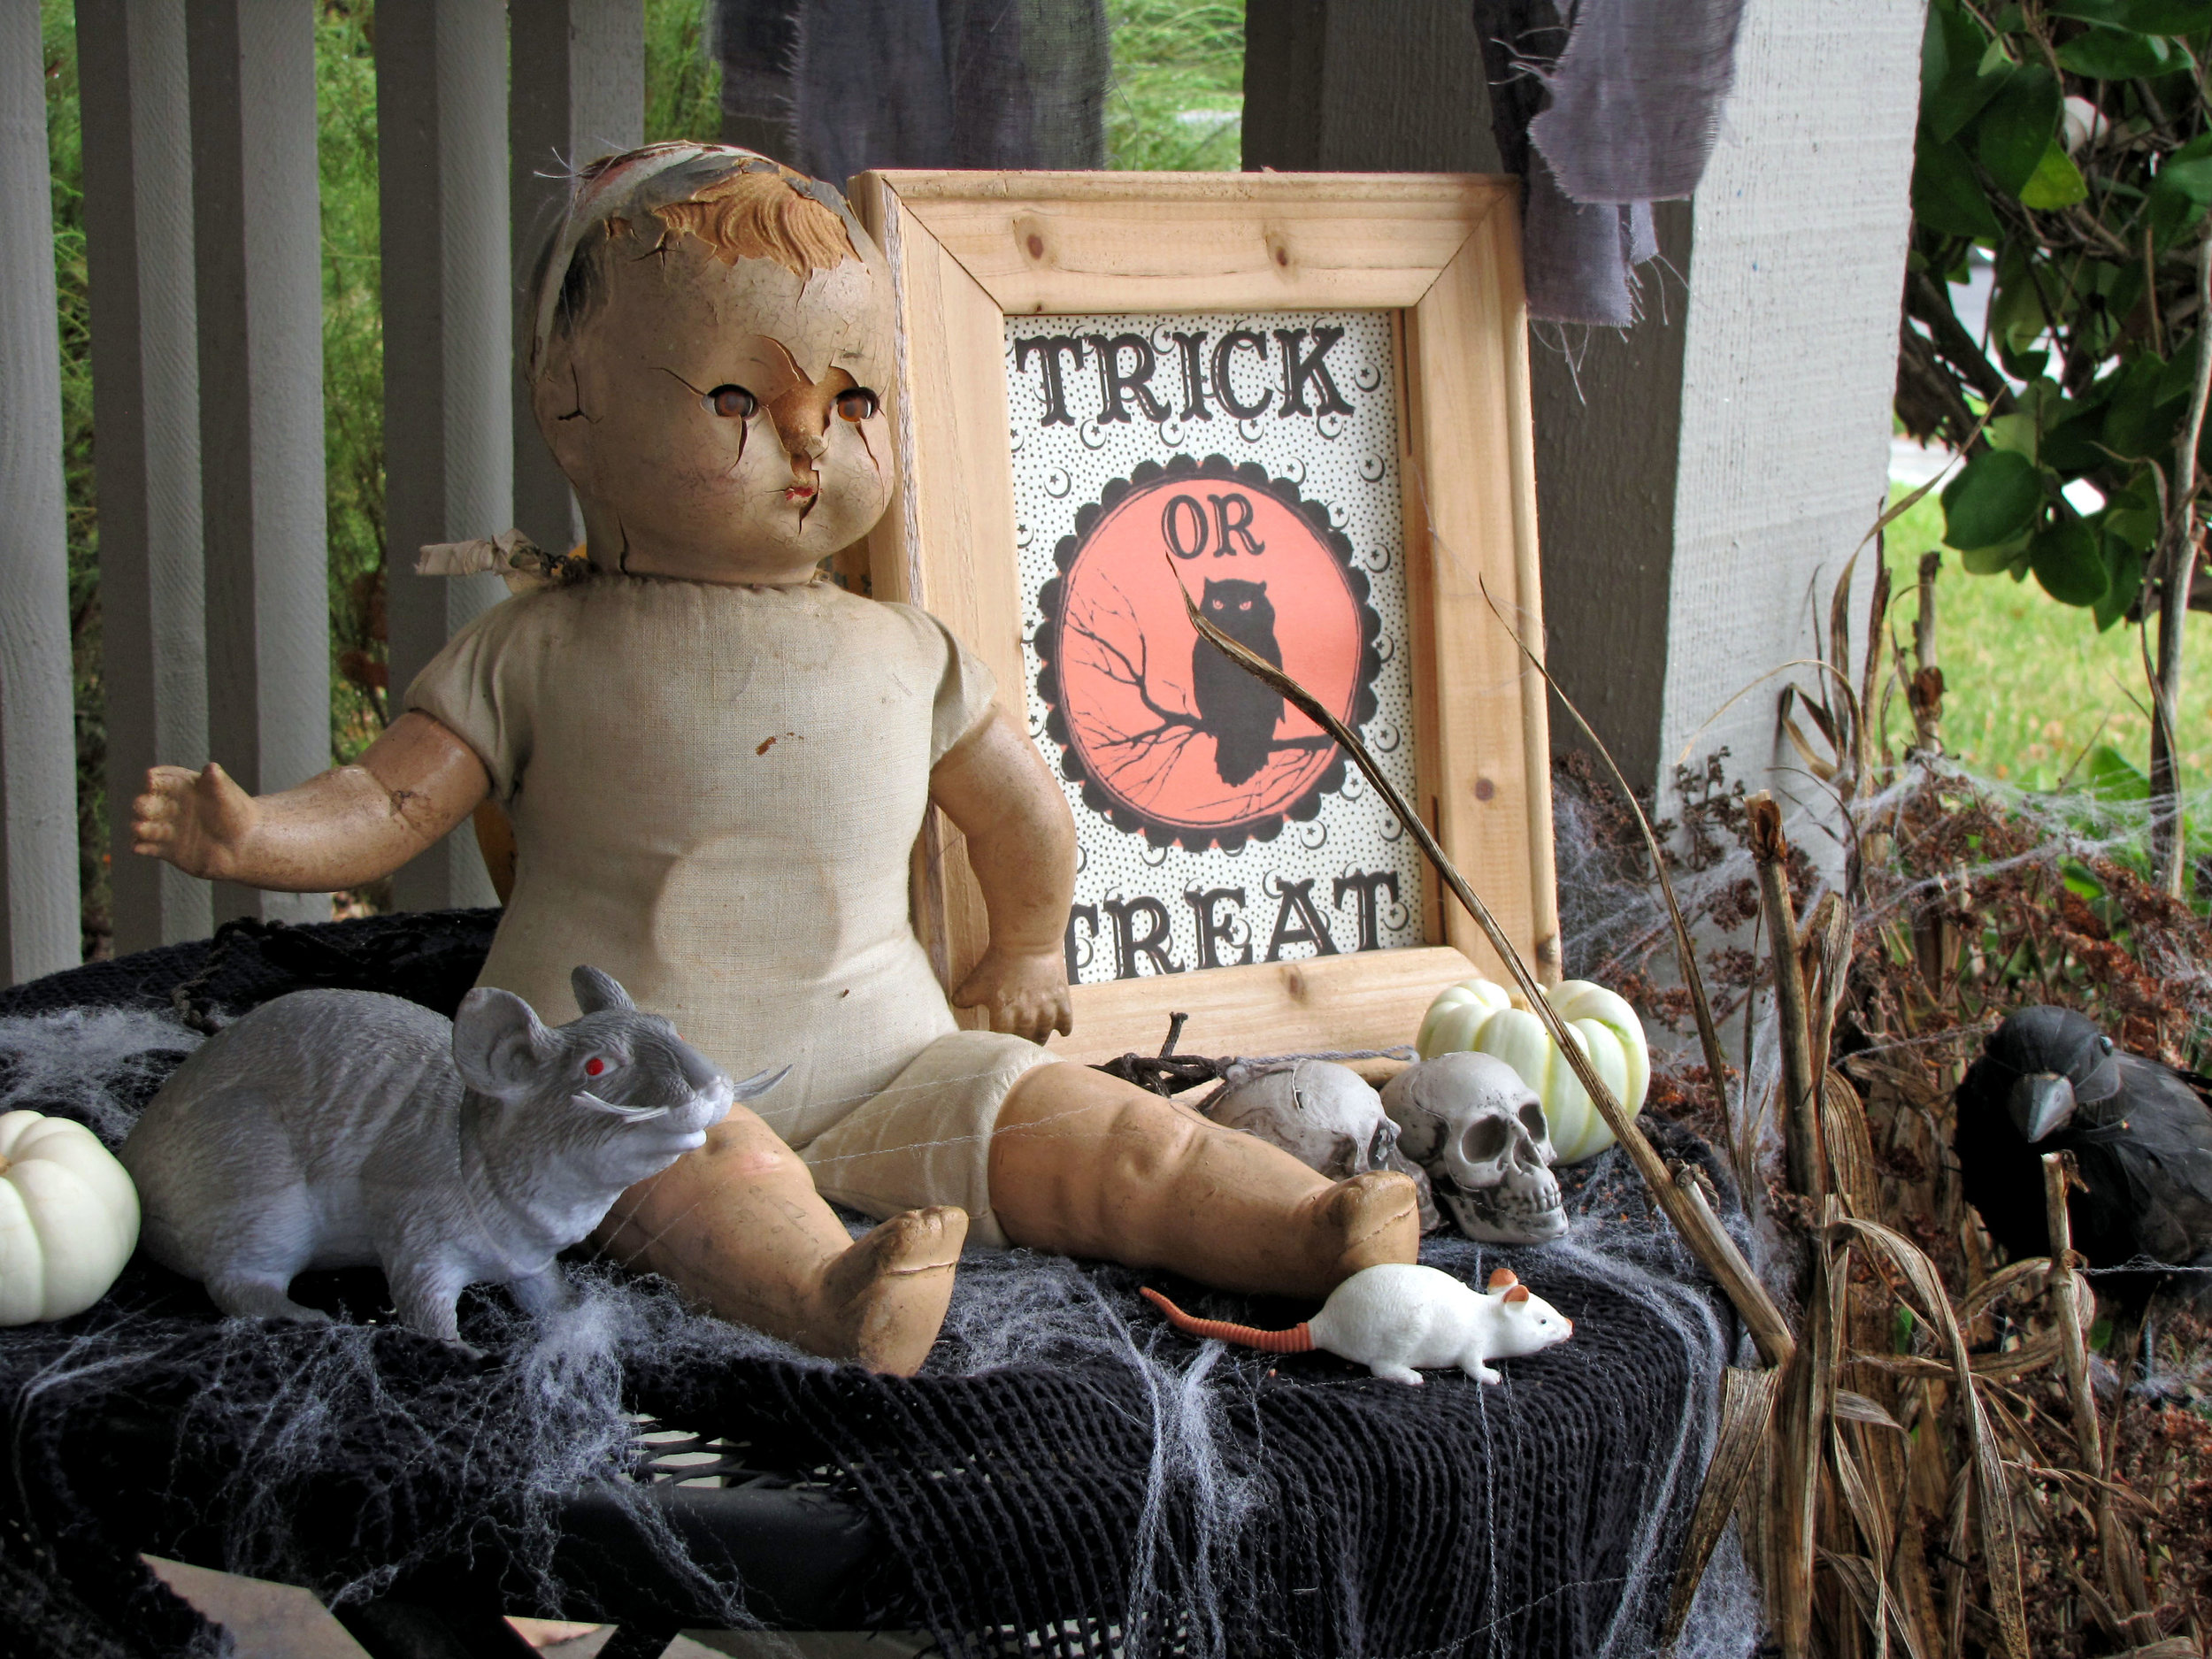 Creepy Halloween doll for scary designs